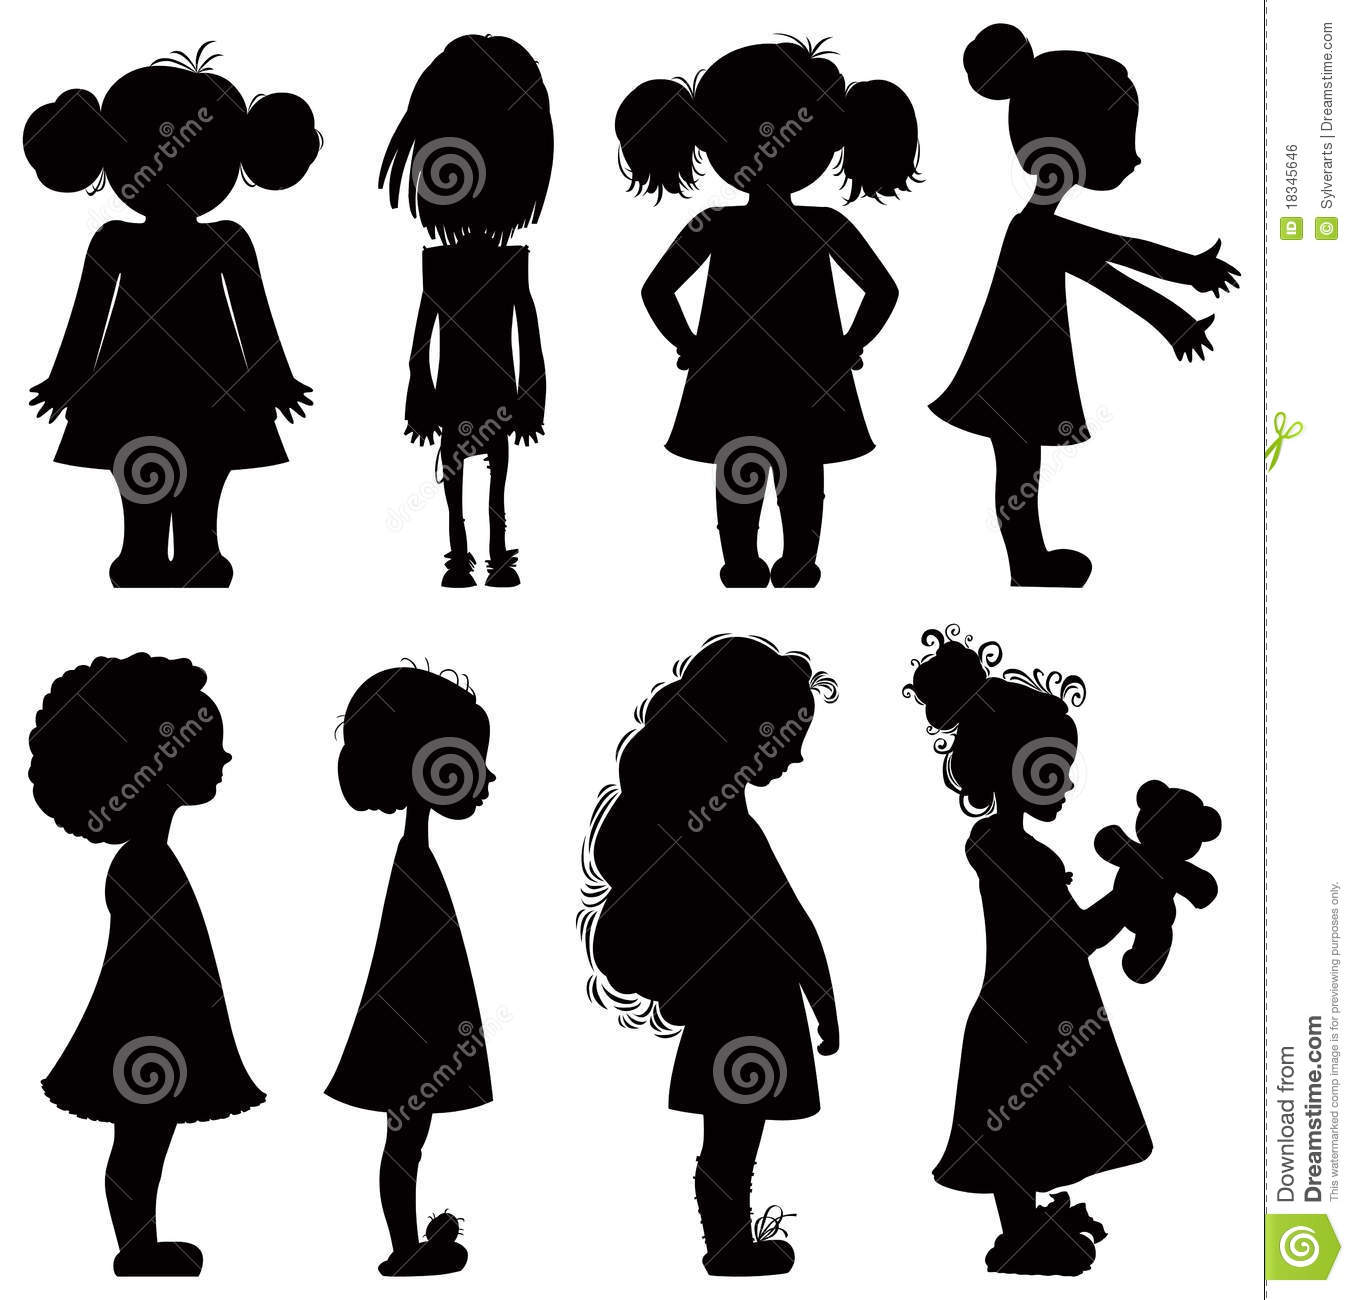 Little Girls Silhouettes Set Royalty Free Stock Image